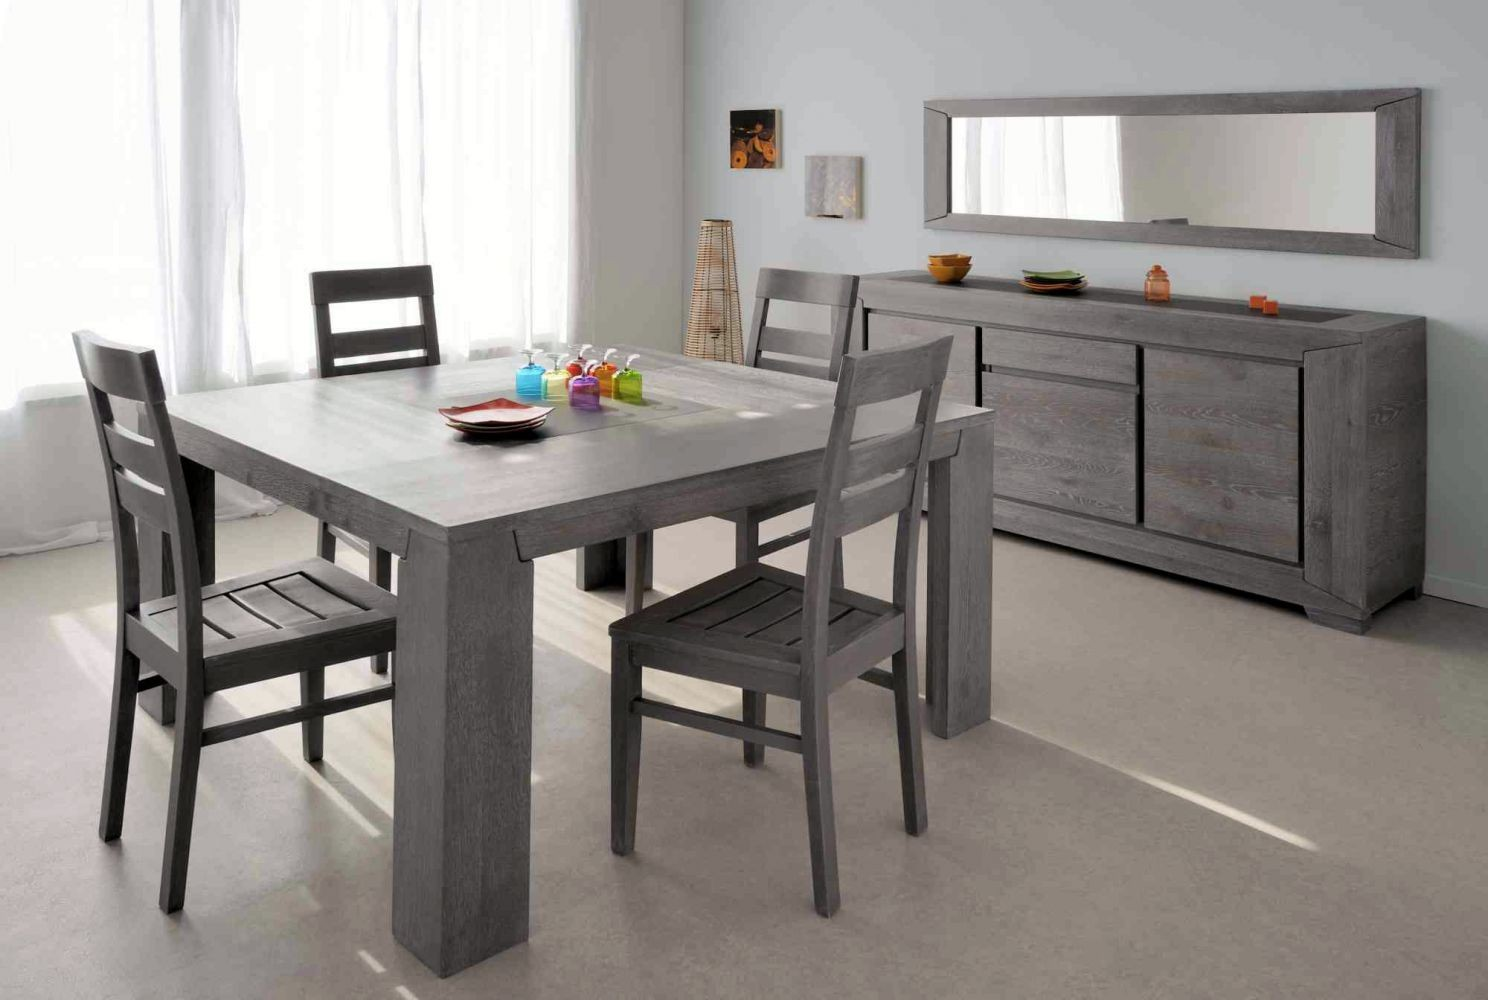 Table cuisine extensible conforama cuisine id es de for Tables cuisine conforama